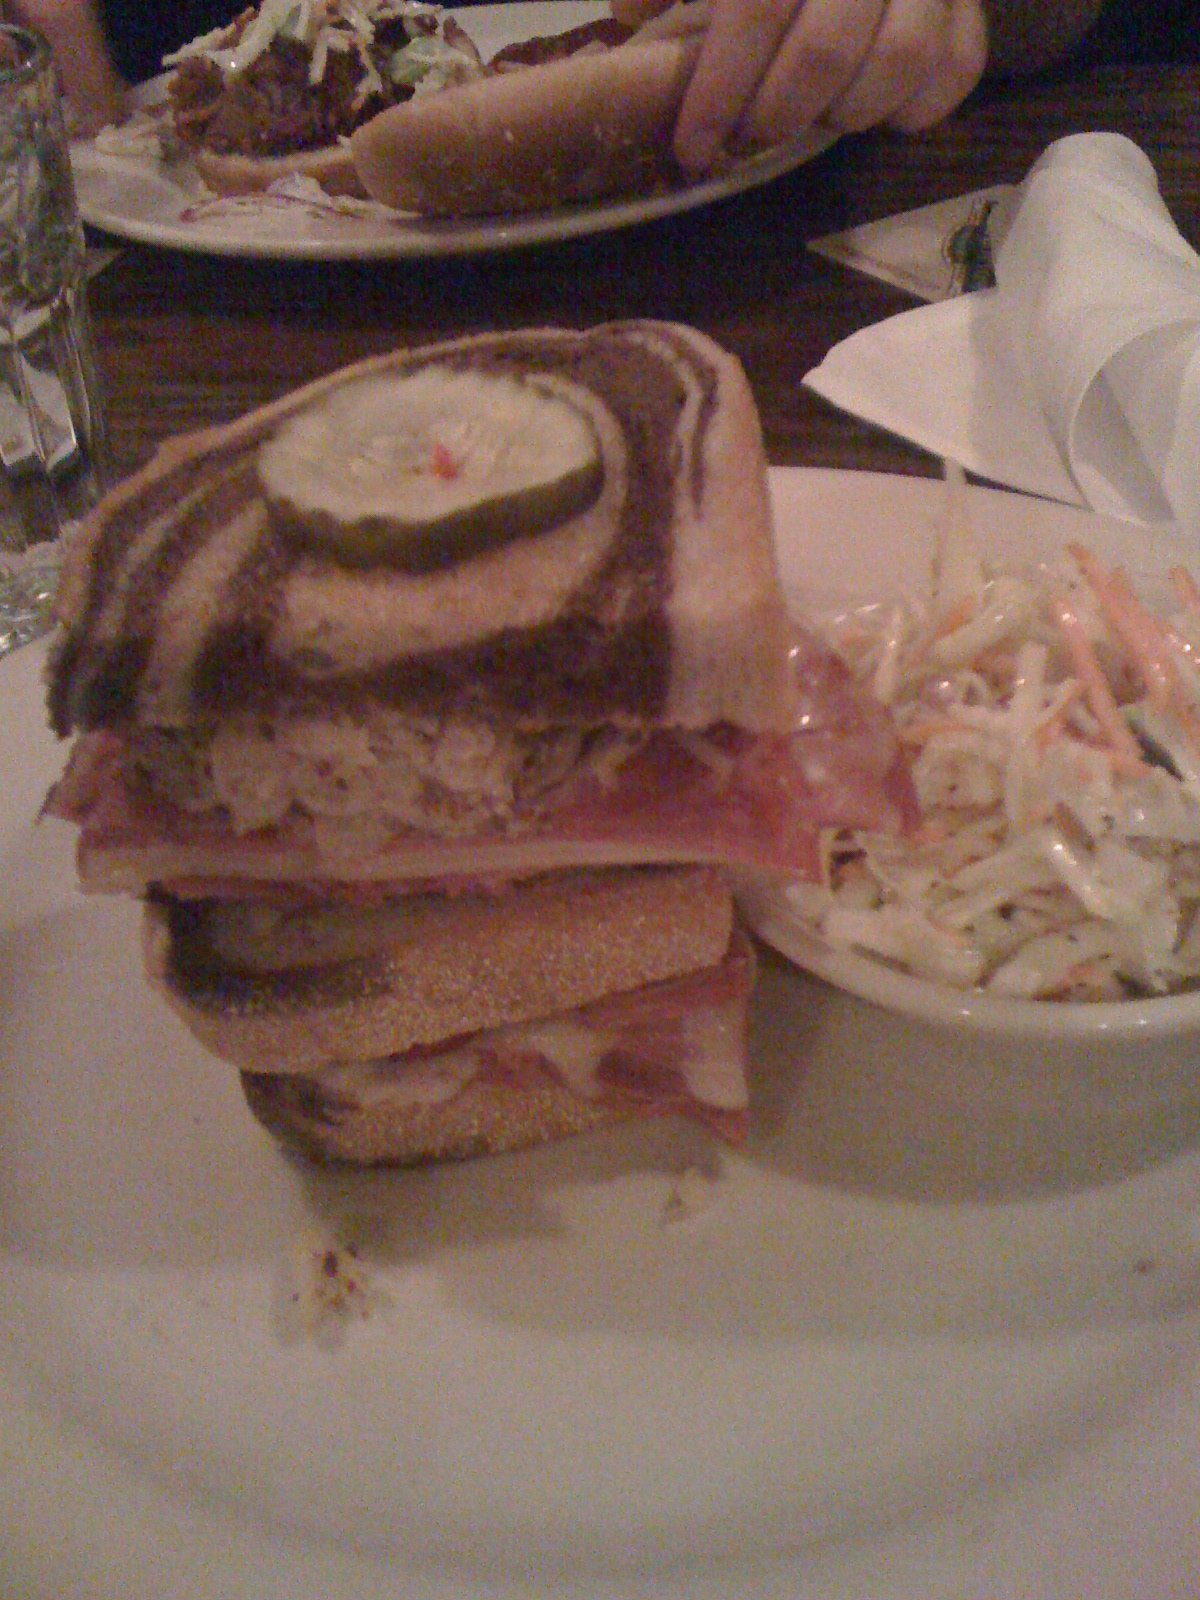 Rock Bottom - www.rockbottom.com :: I am a sucker for reuben sandwiches... I saw this on the menu and just HAD to order it.... it was ok for a crappy place to eat...  The staff is not trained to take orders correctly though... my brother ordered a Pulled Pork Sandwich and he got a Turkey Club... he told the wait staff that he had ordered a Pulled Pork Sandwich... they told him he didnt even though everyone at the table agreed that he had ordered the Pork....  how lazy are we to bluntly lie just to reduce burning extra calories!  go to the gym and give my brother his correct order!